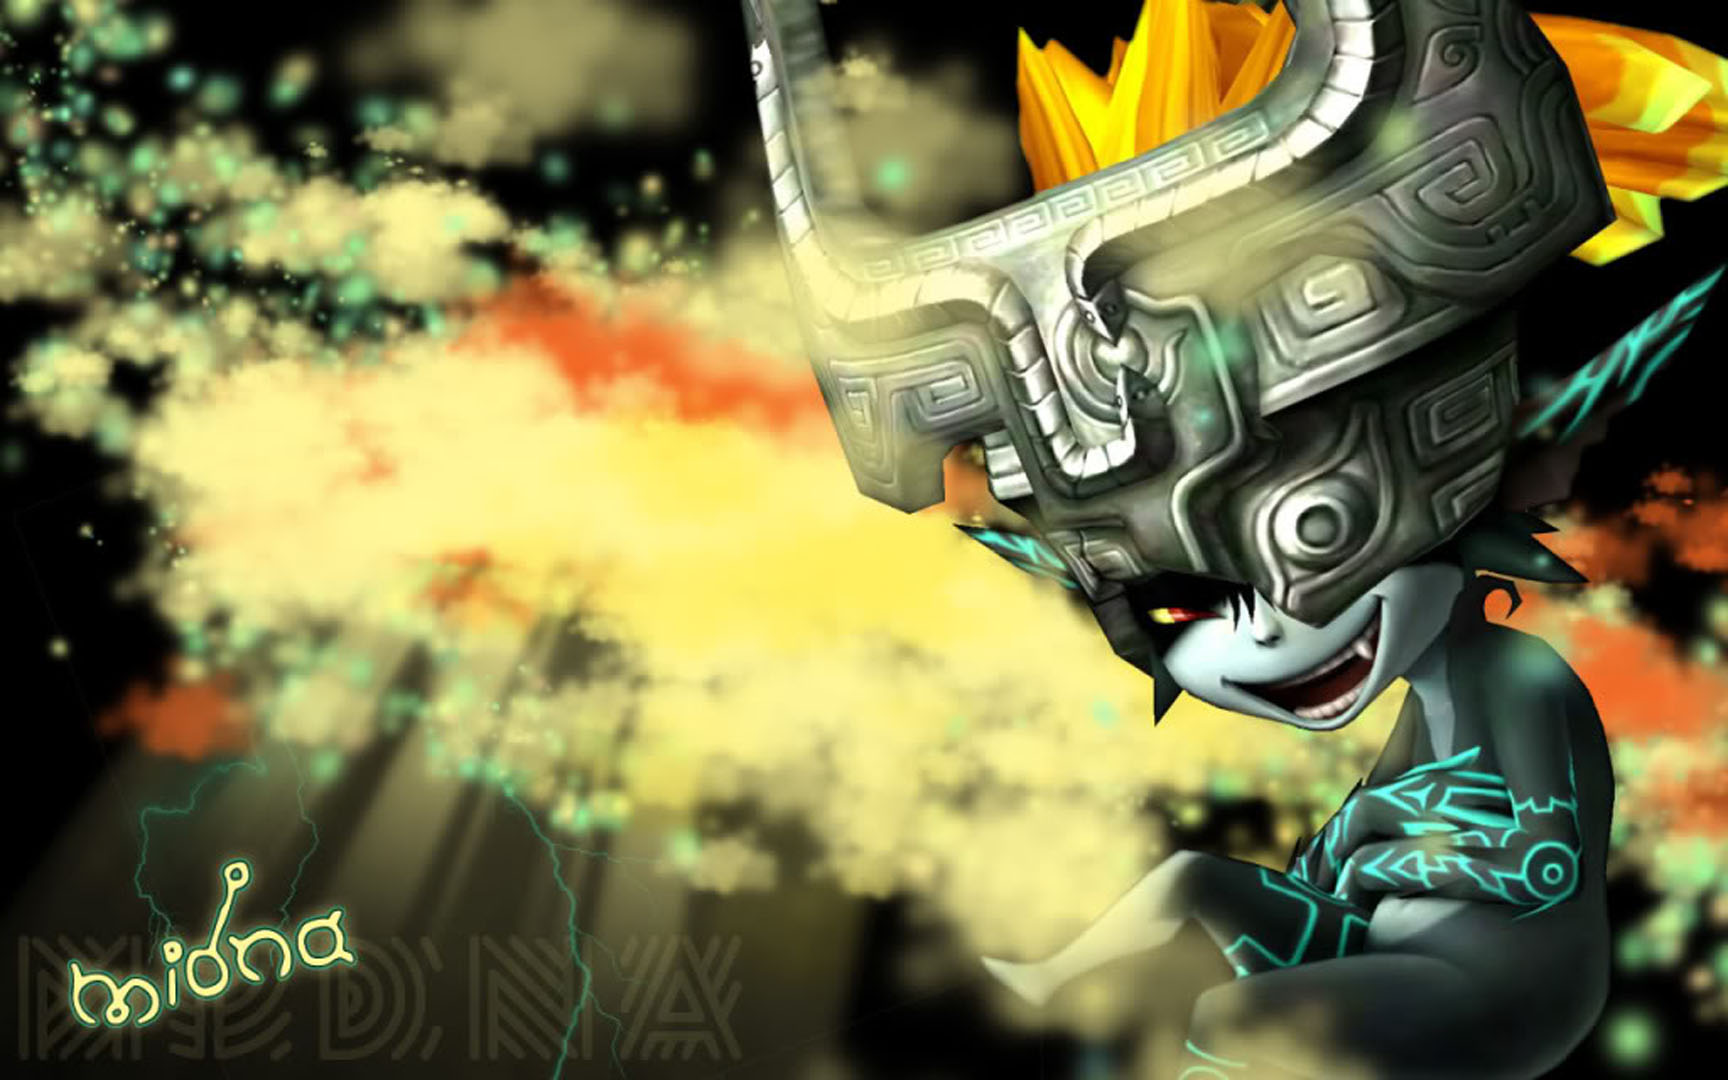 Twilight Princess Sneaky Midna   Nintendo Games Wallpaper Image 1728x1080